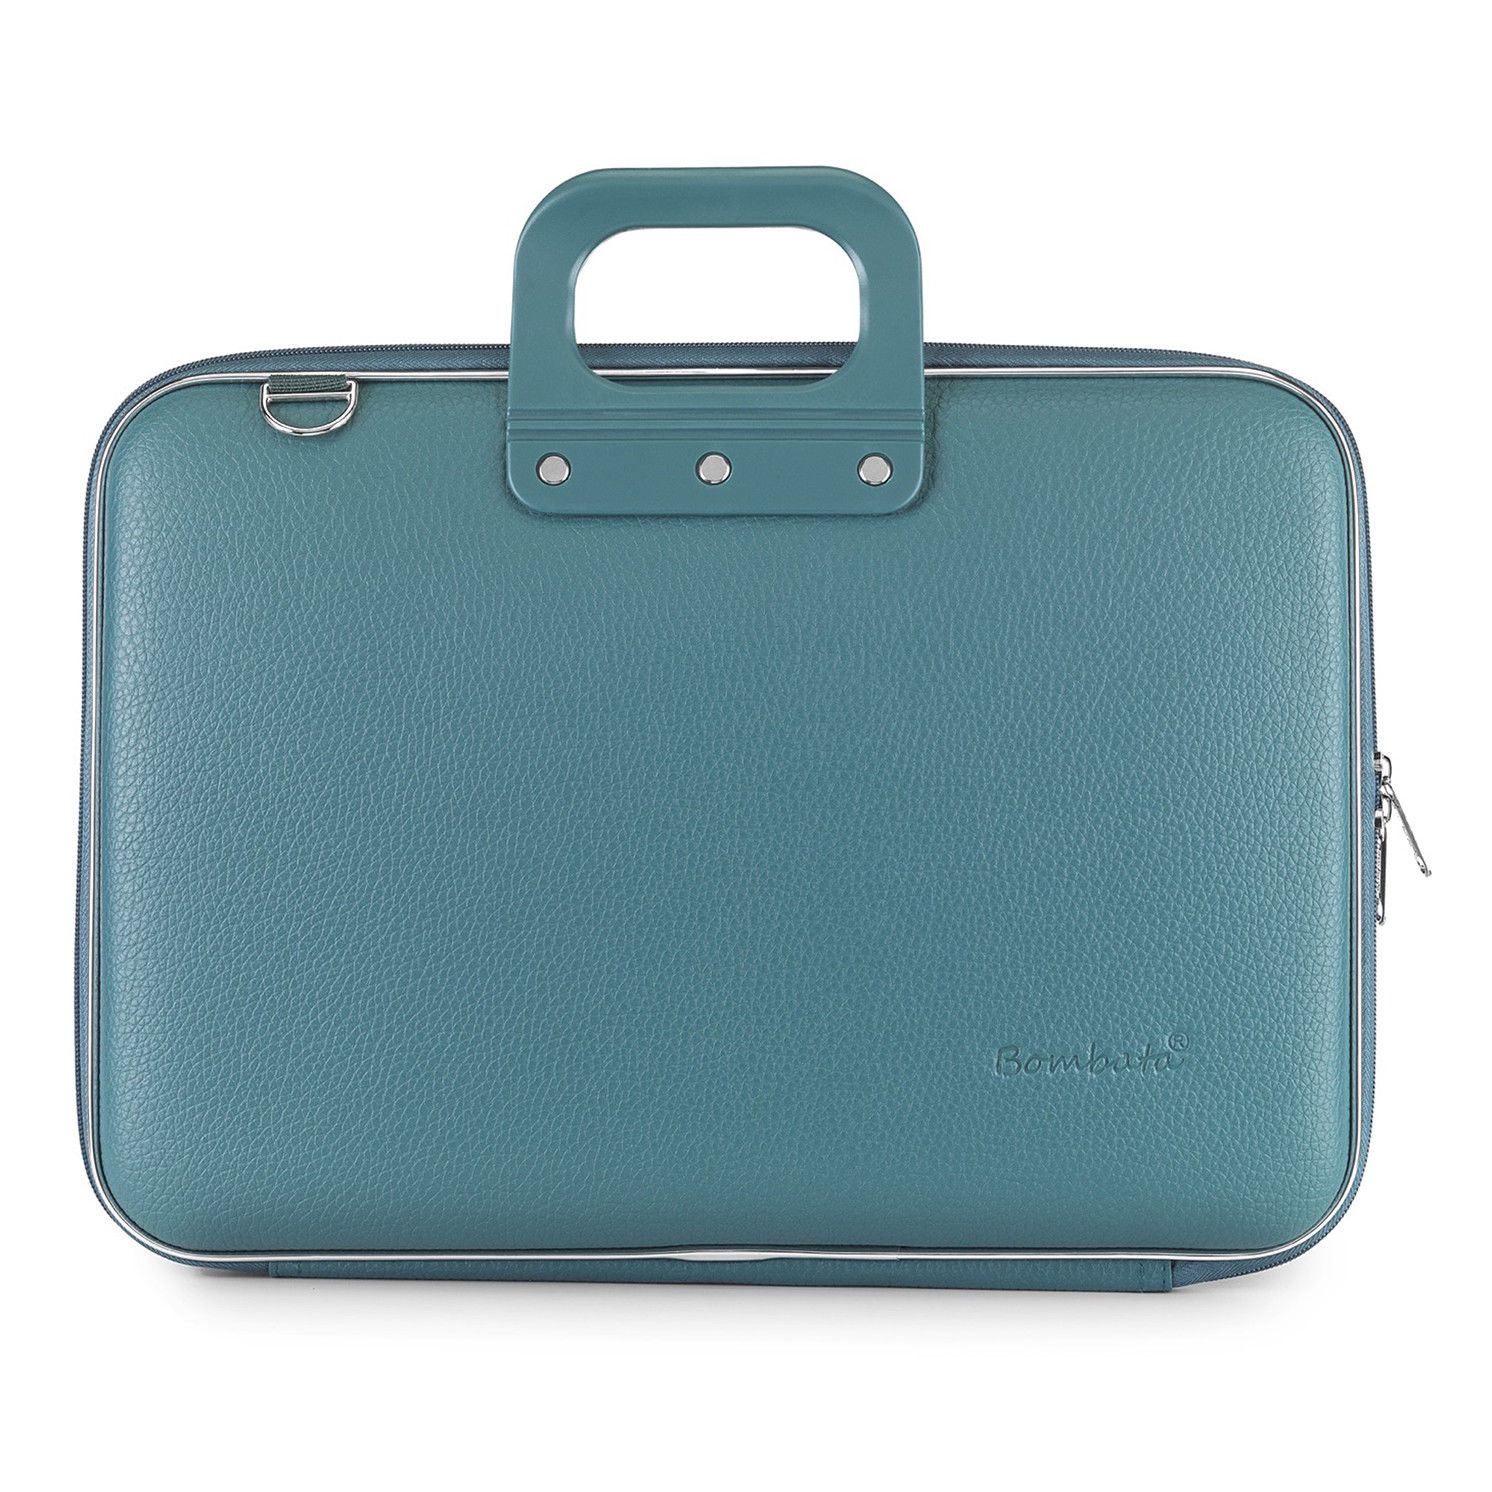 Bombata – Teal Blue Classic 15″ Laptop Case/Bag with Matching Shoulder Strap